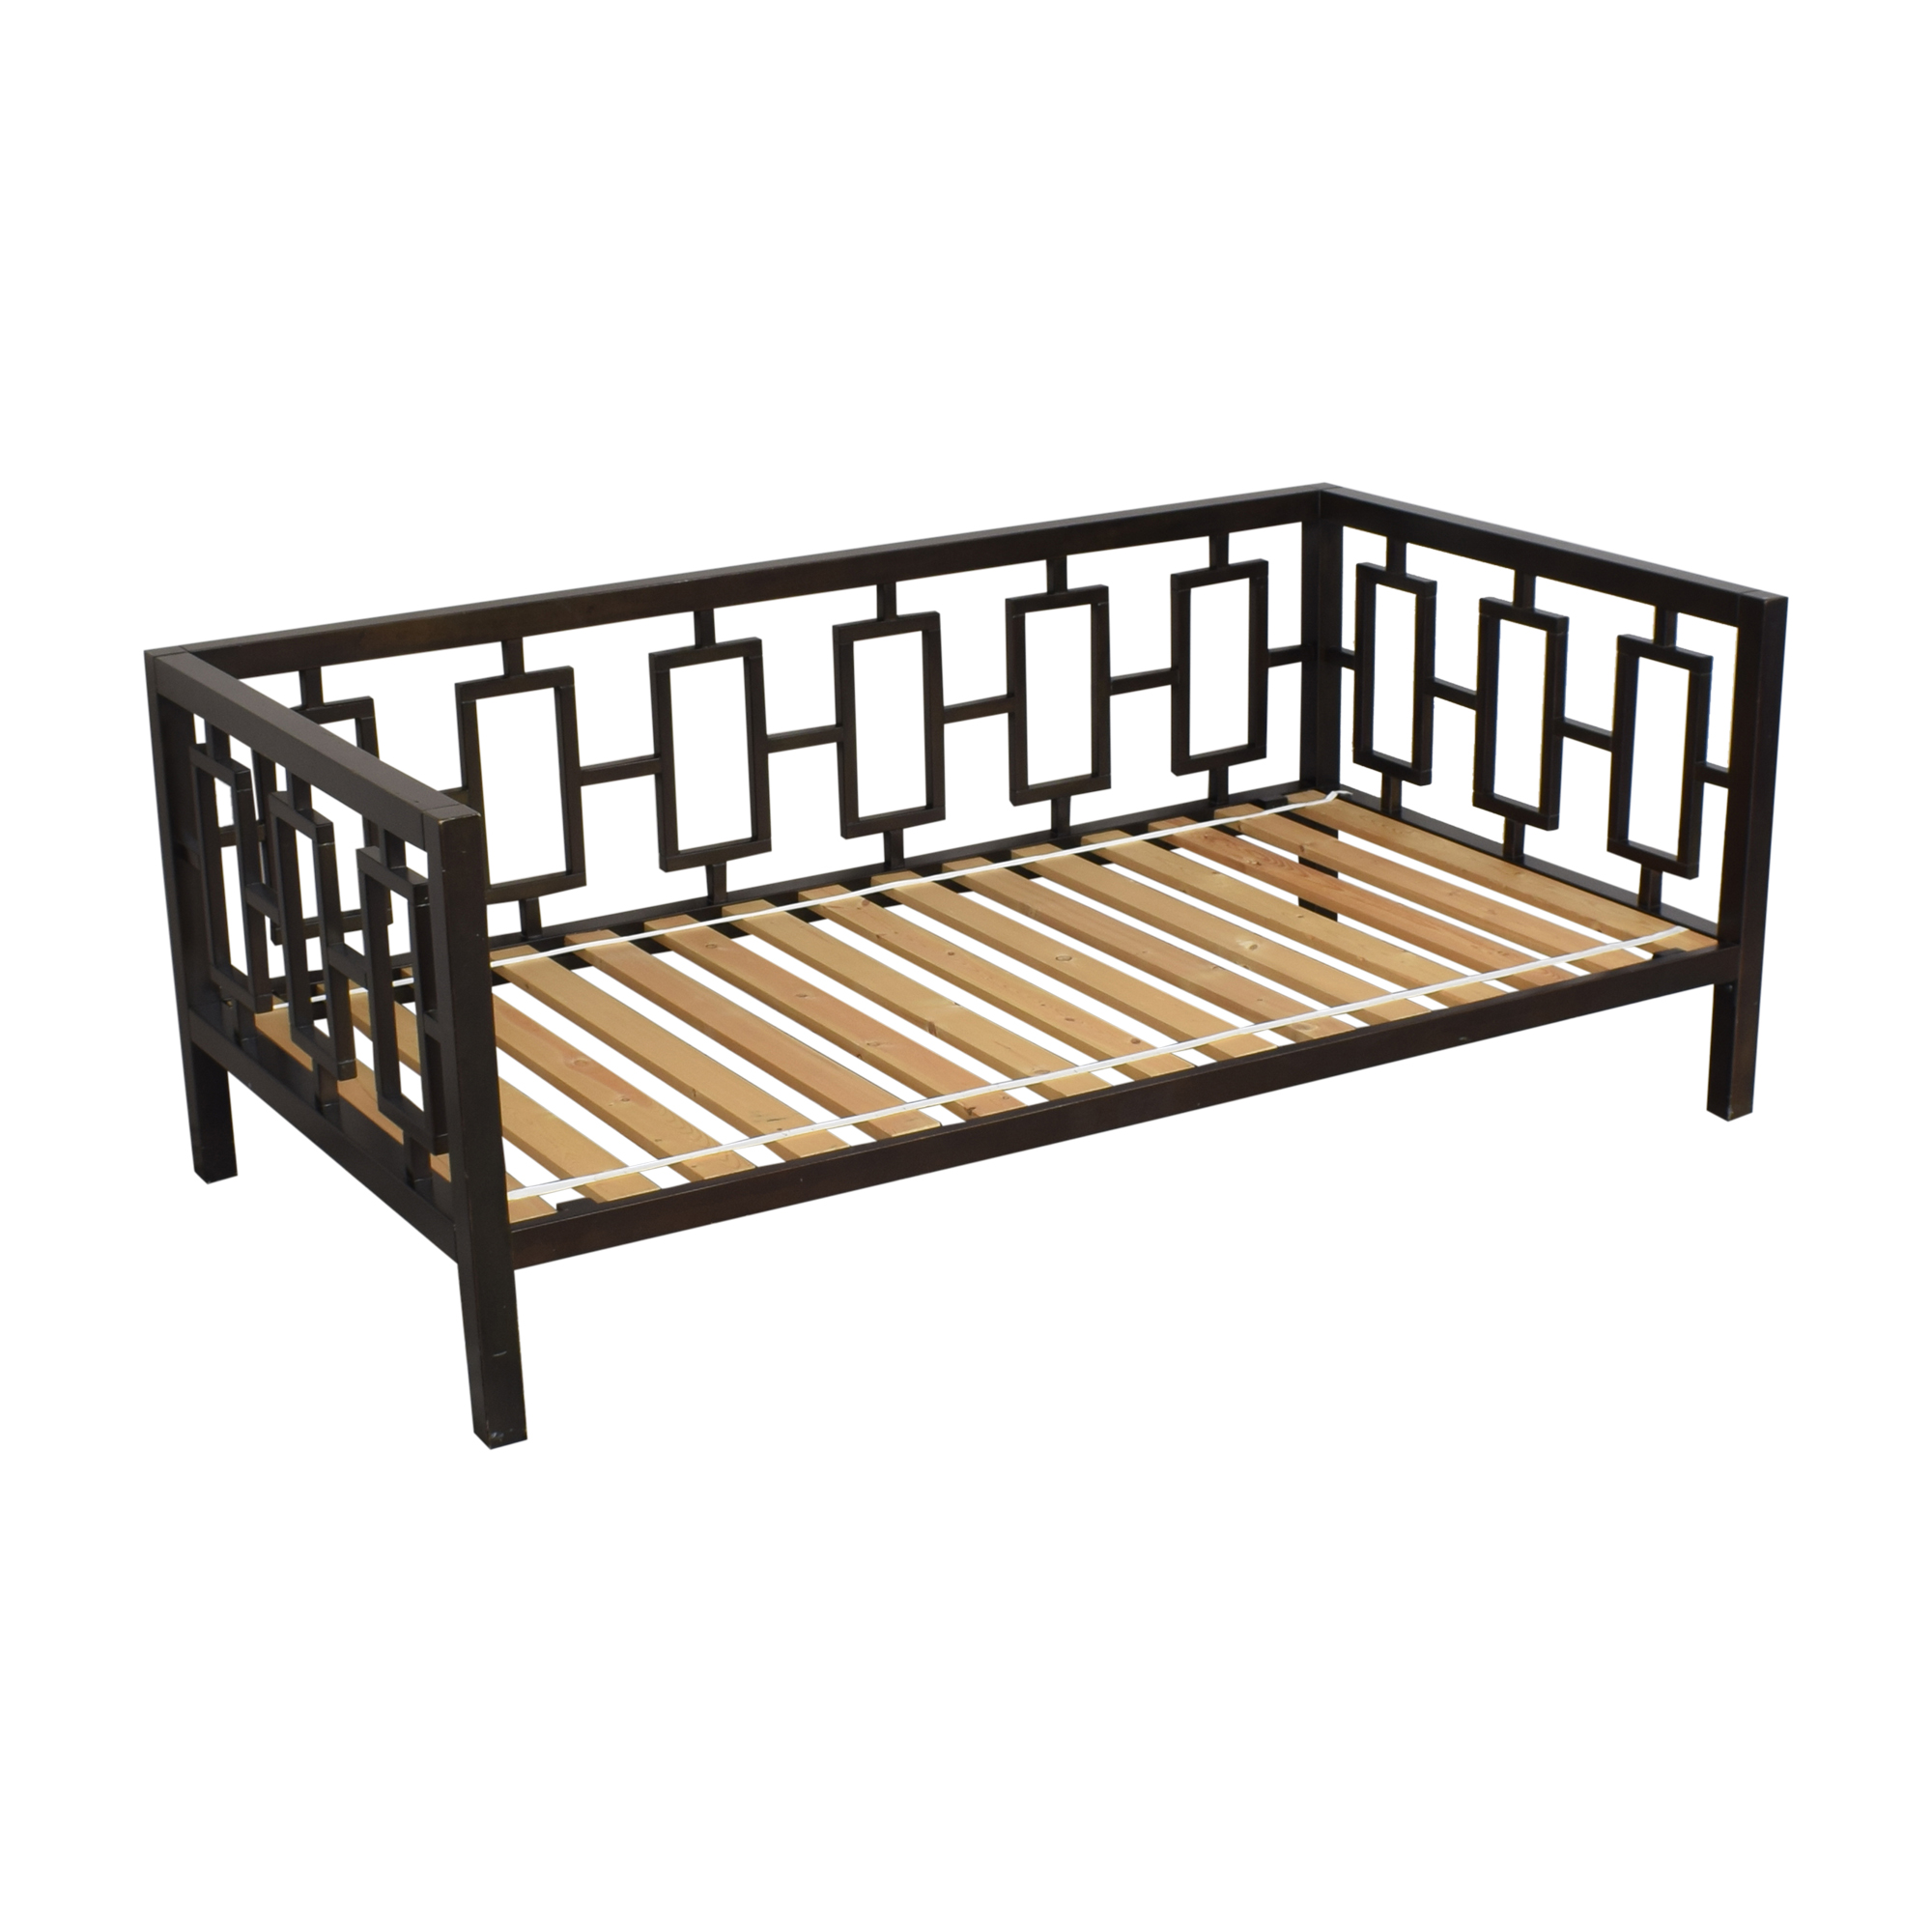 West Elm West Elm Window Twin Daybed price